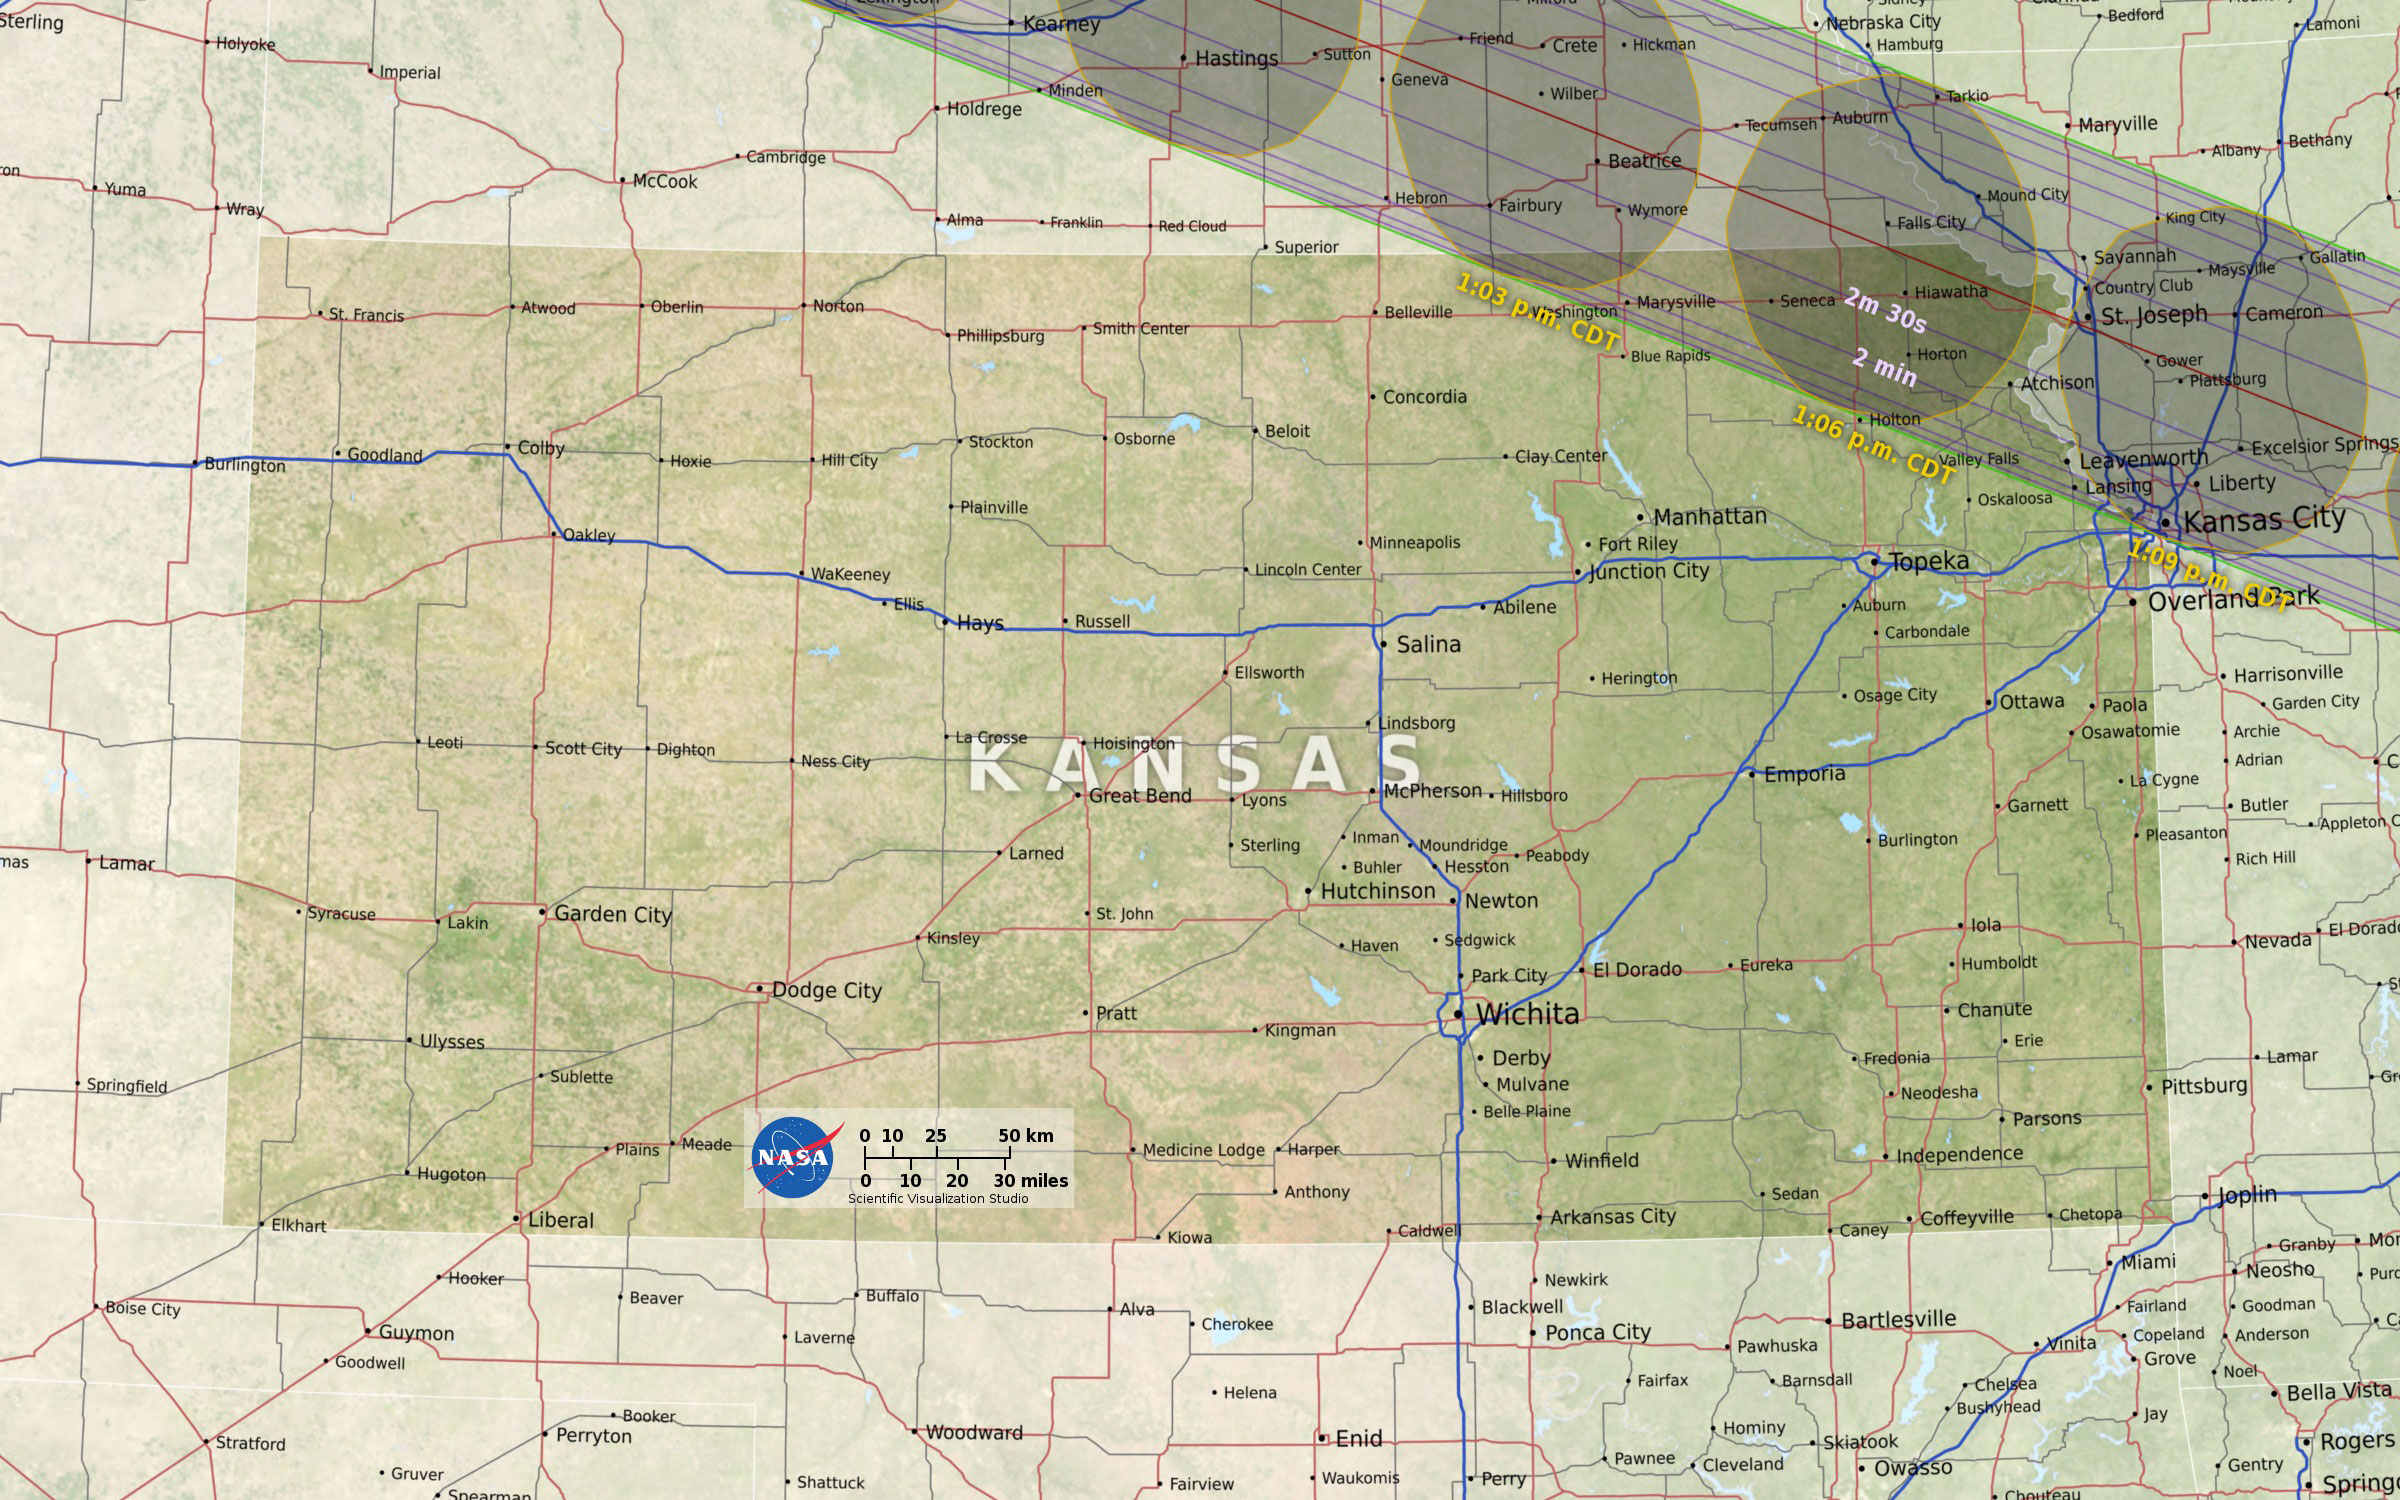 all of this information was used to create these maps of the total eclipse path as it p through each state